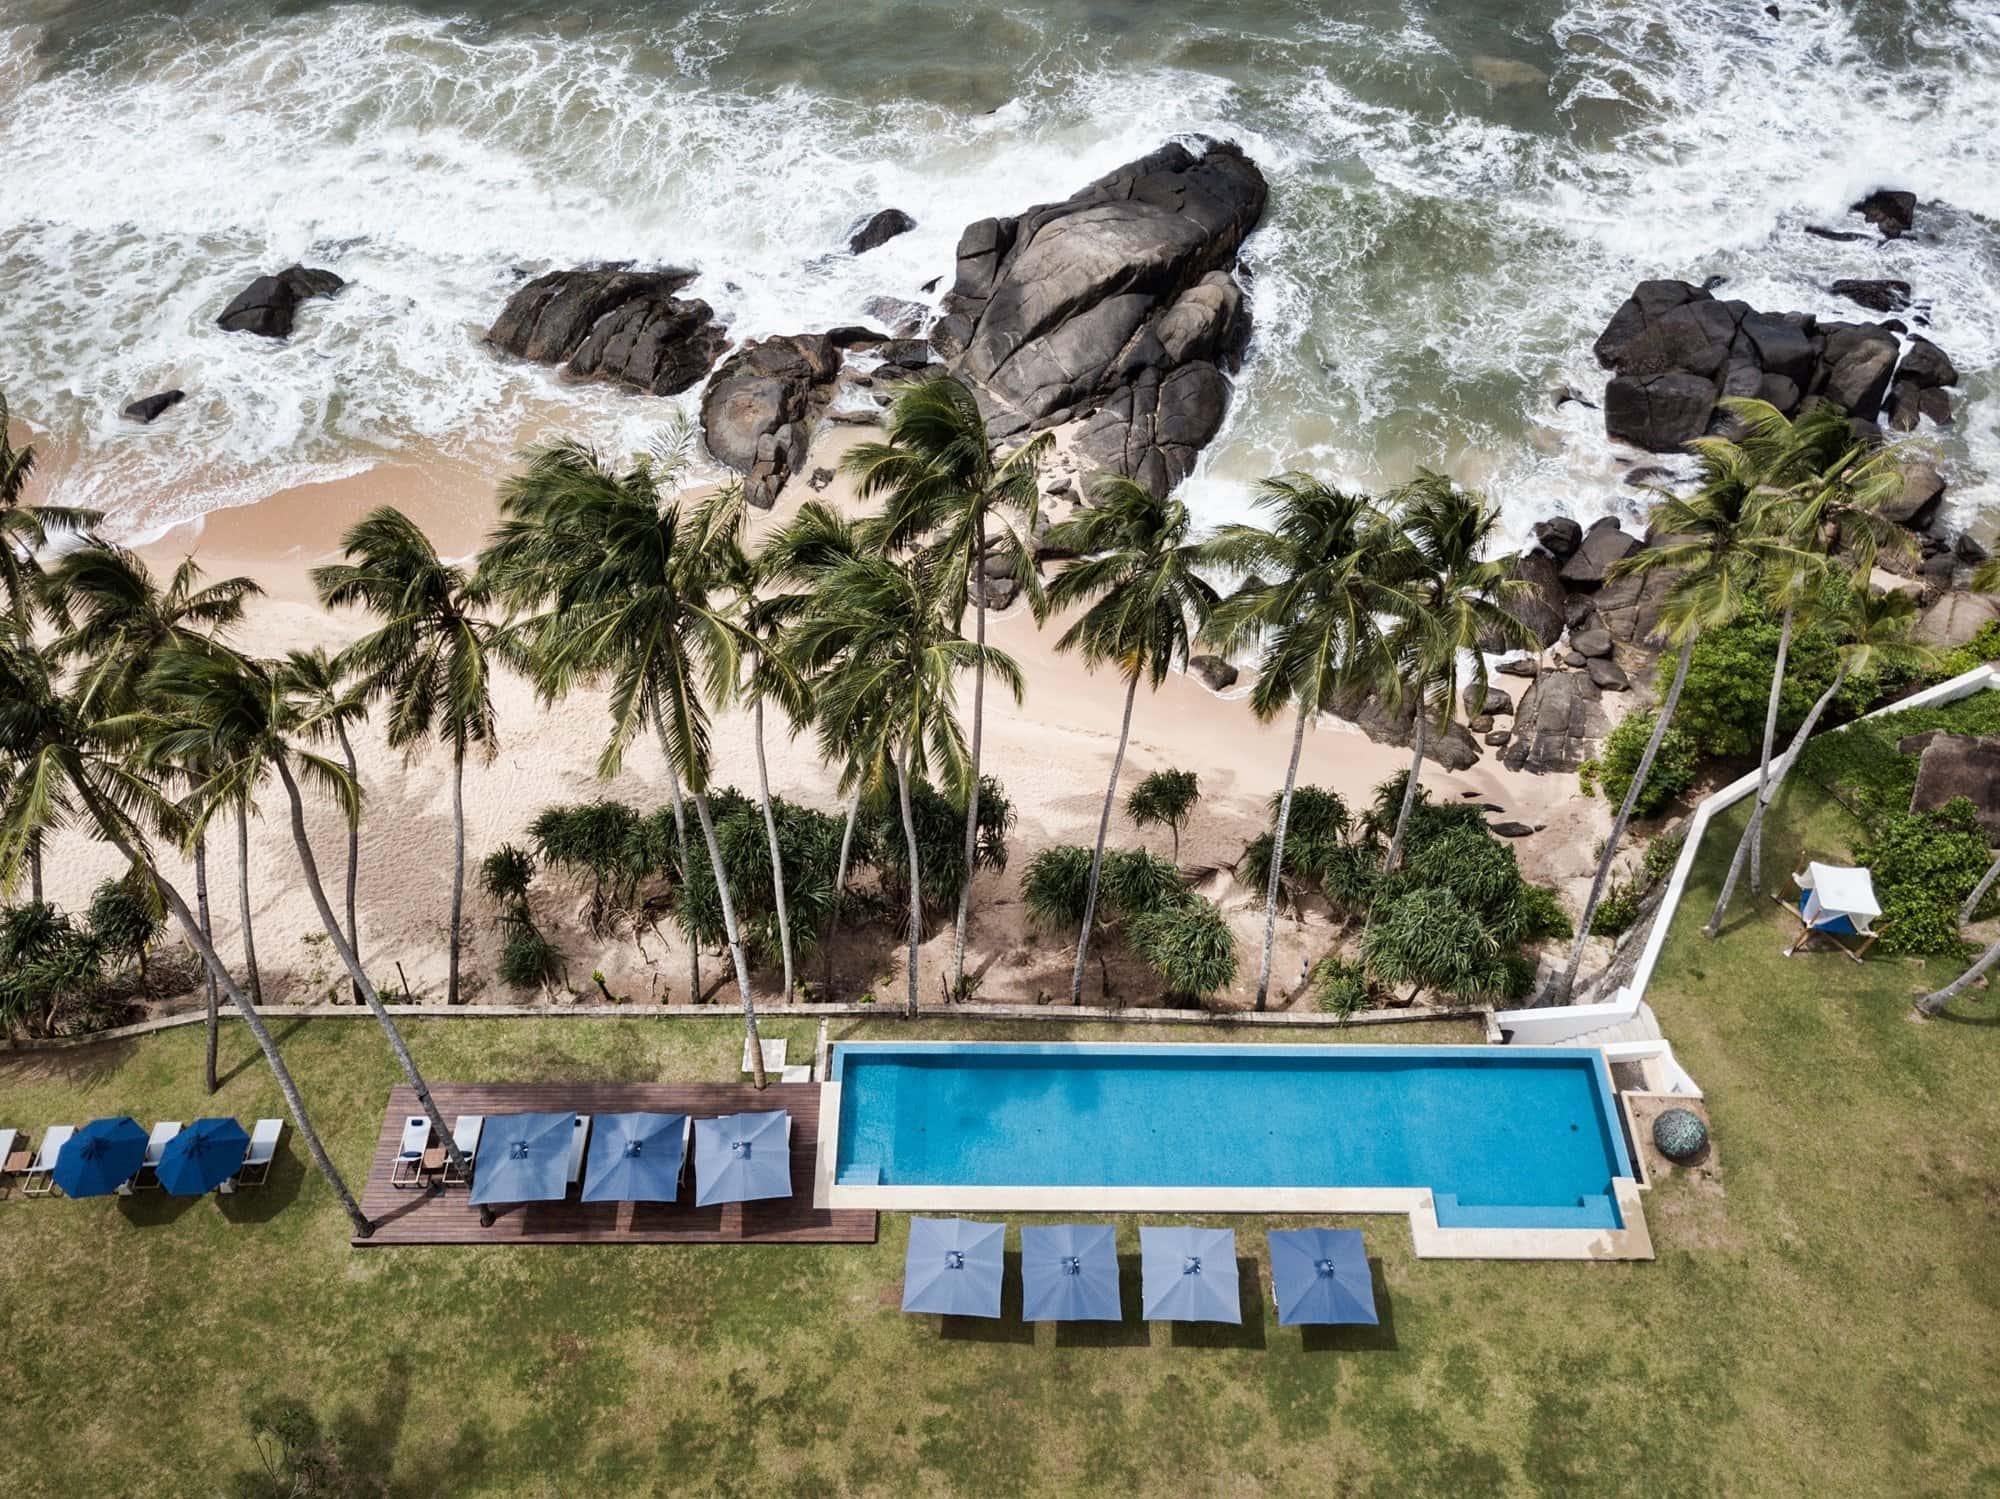 Aerial shot of Kumu Beach swimming pool with palm trees and rocky beach